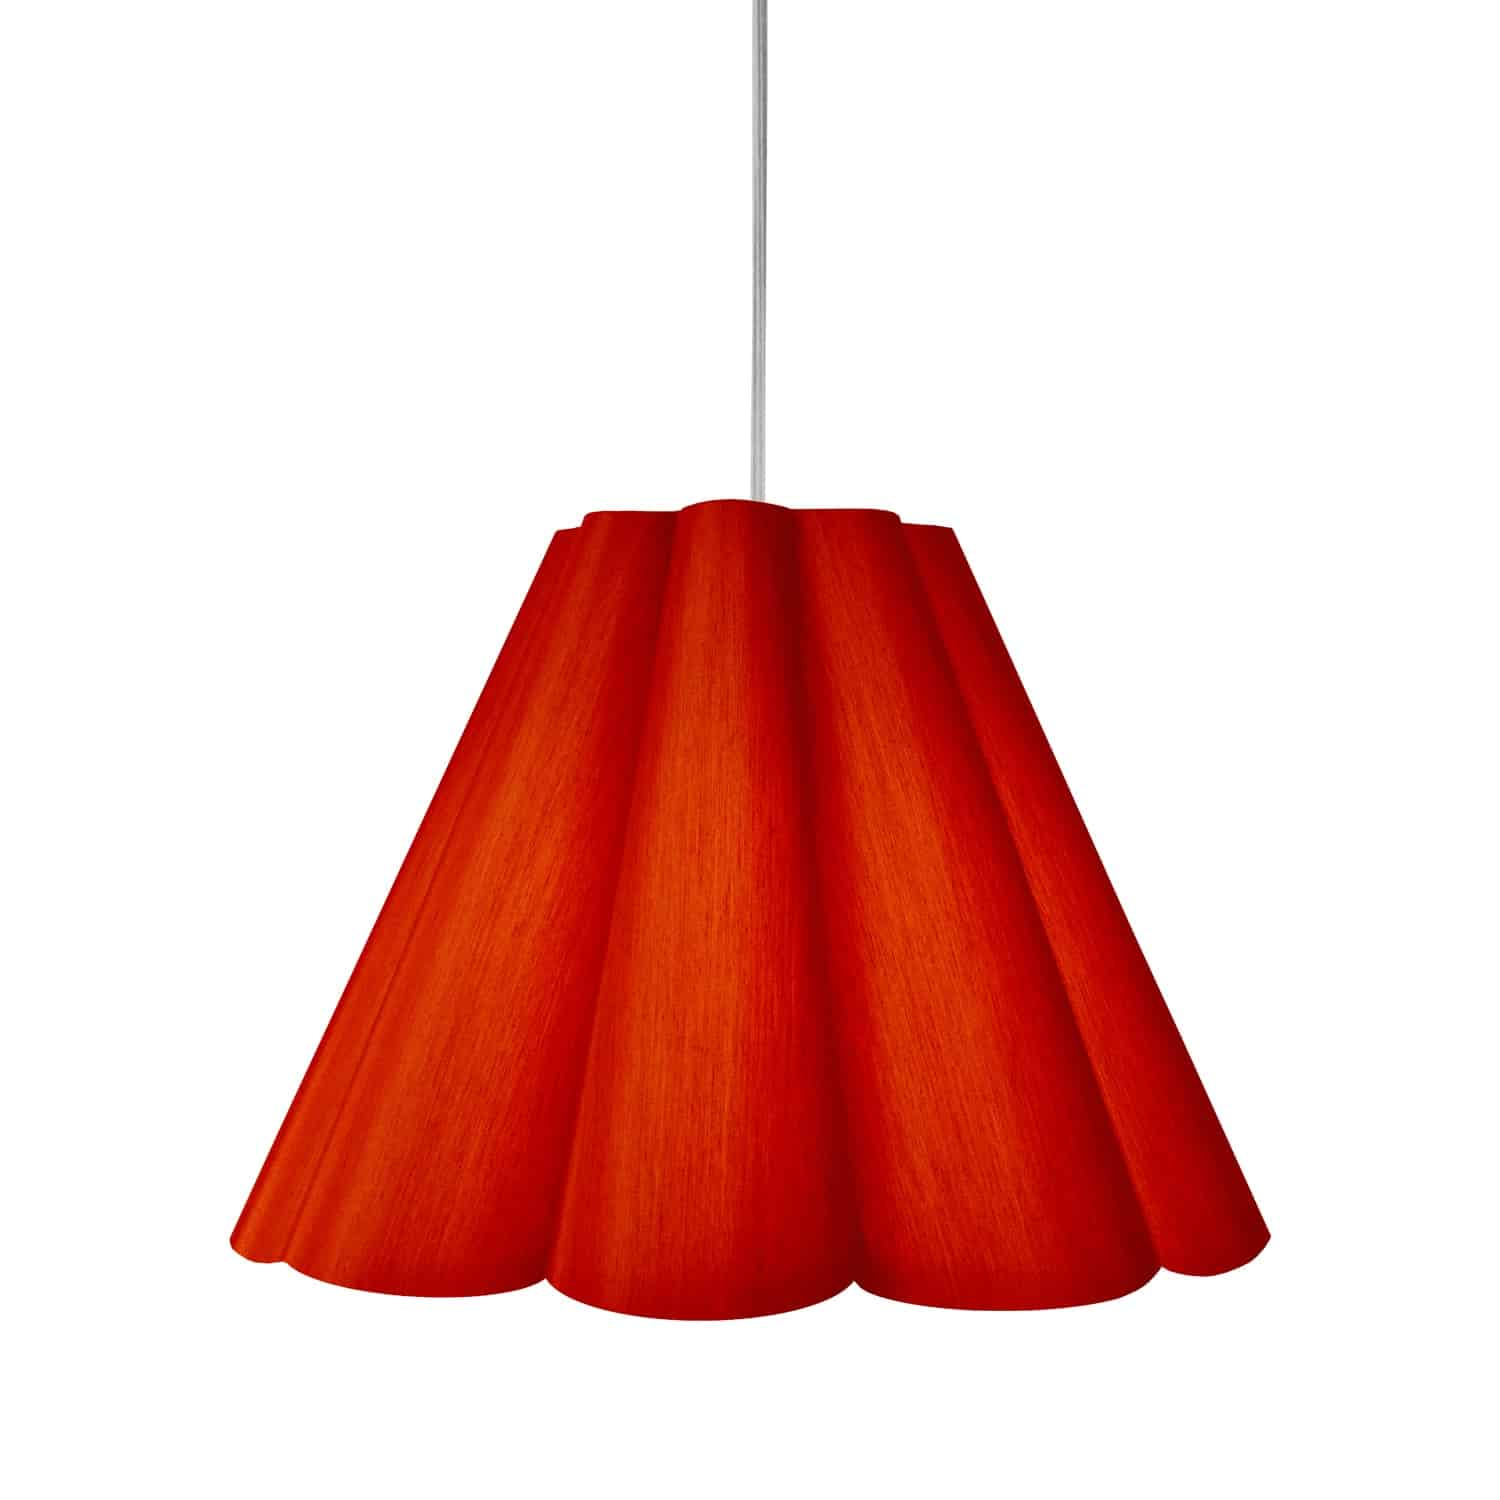 4 Light Kendra Pendant JTone Red, Medium Polished Chrome